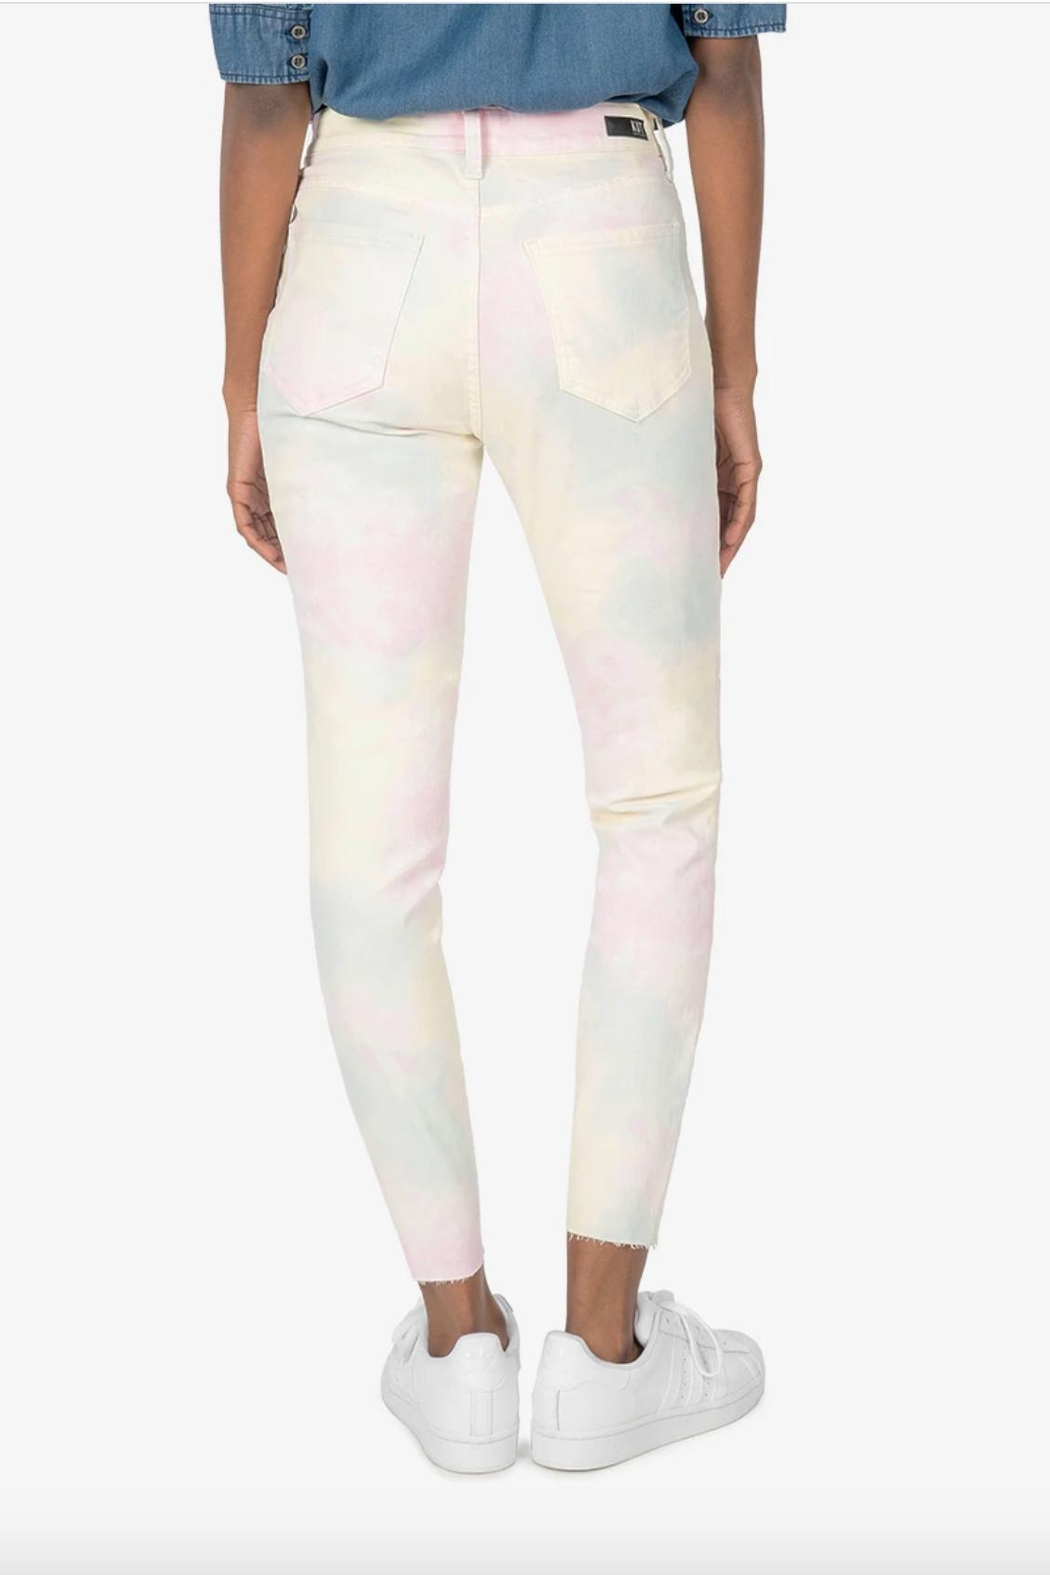 Kut from the Kloth Tie Dye Jean - Back Cropped Image